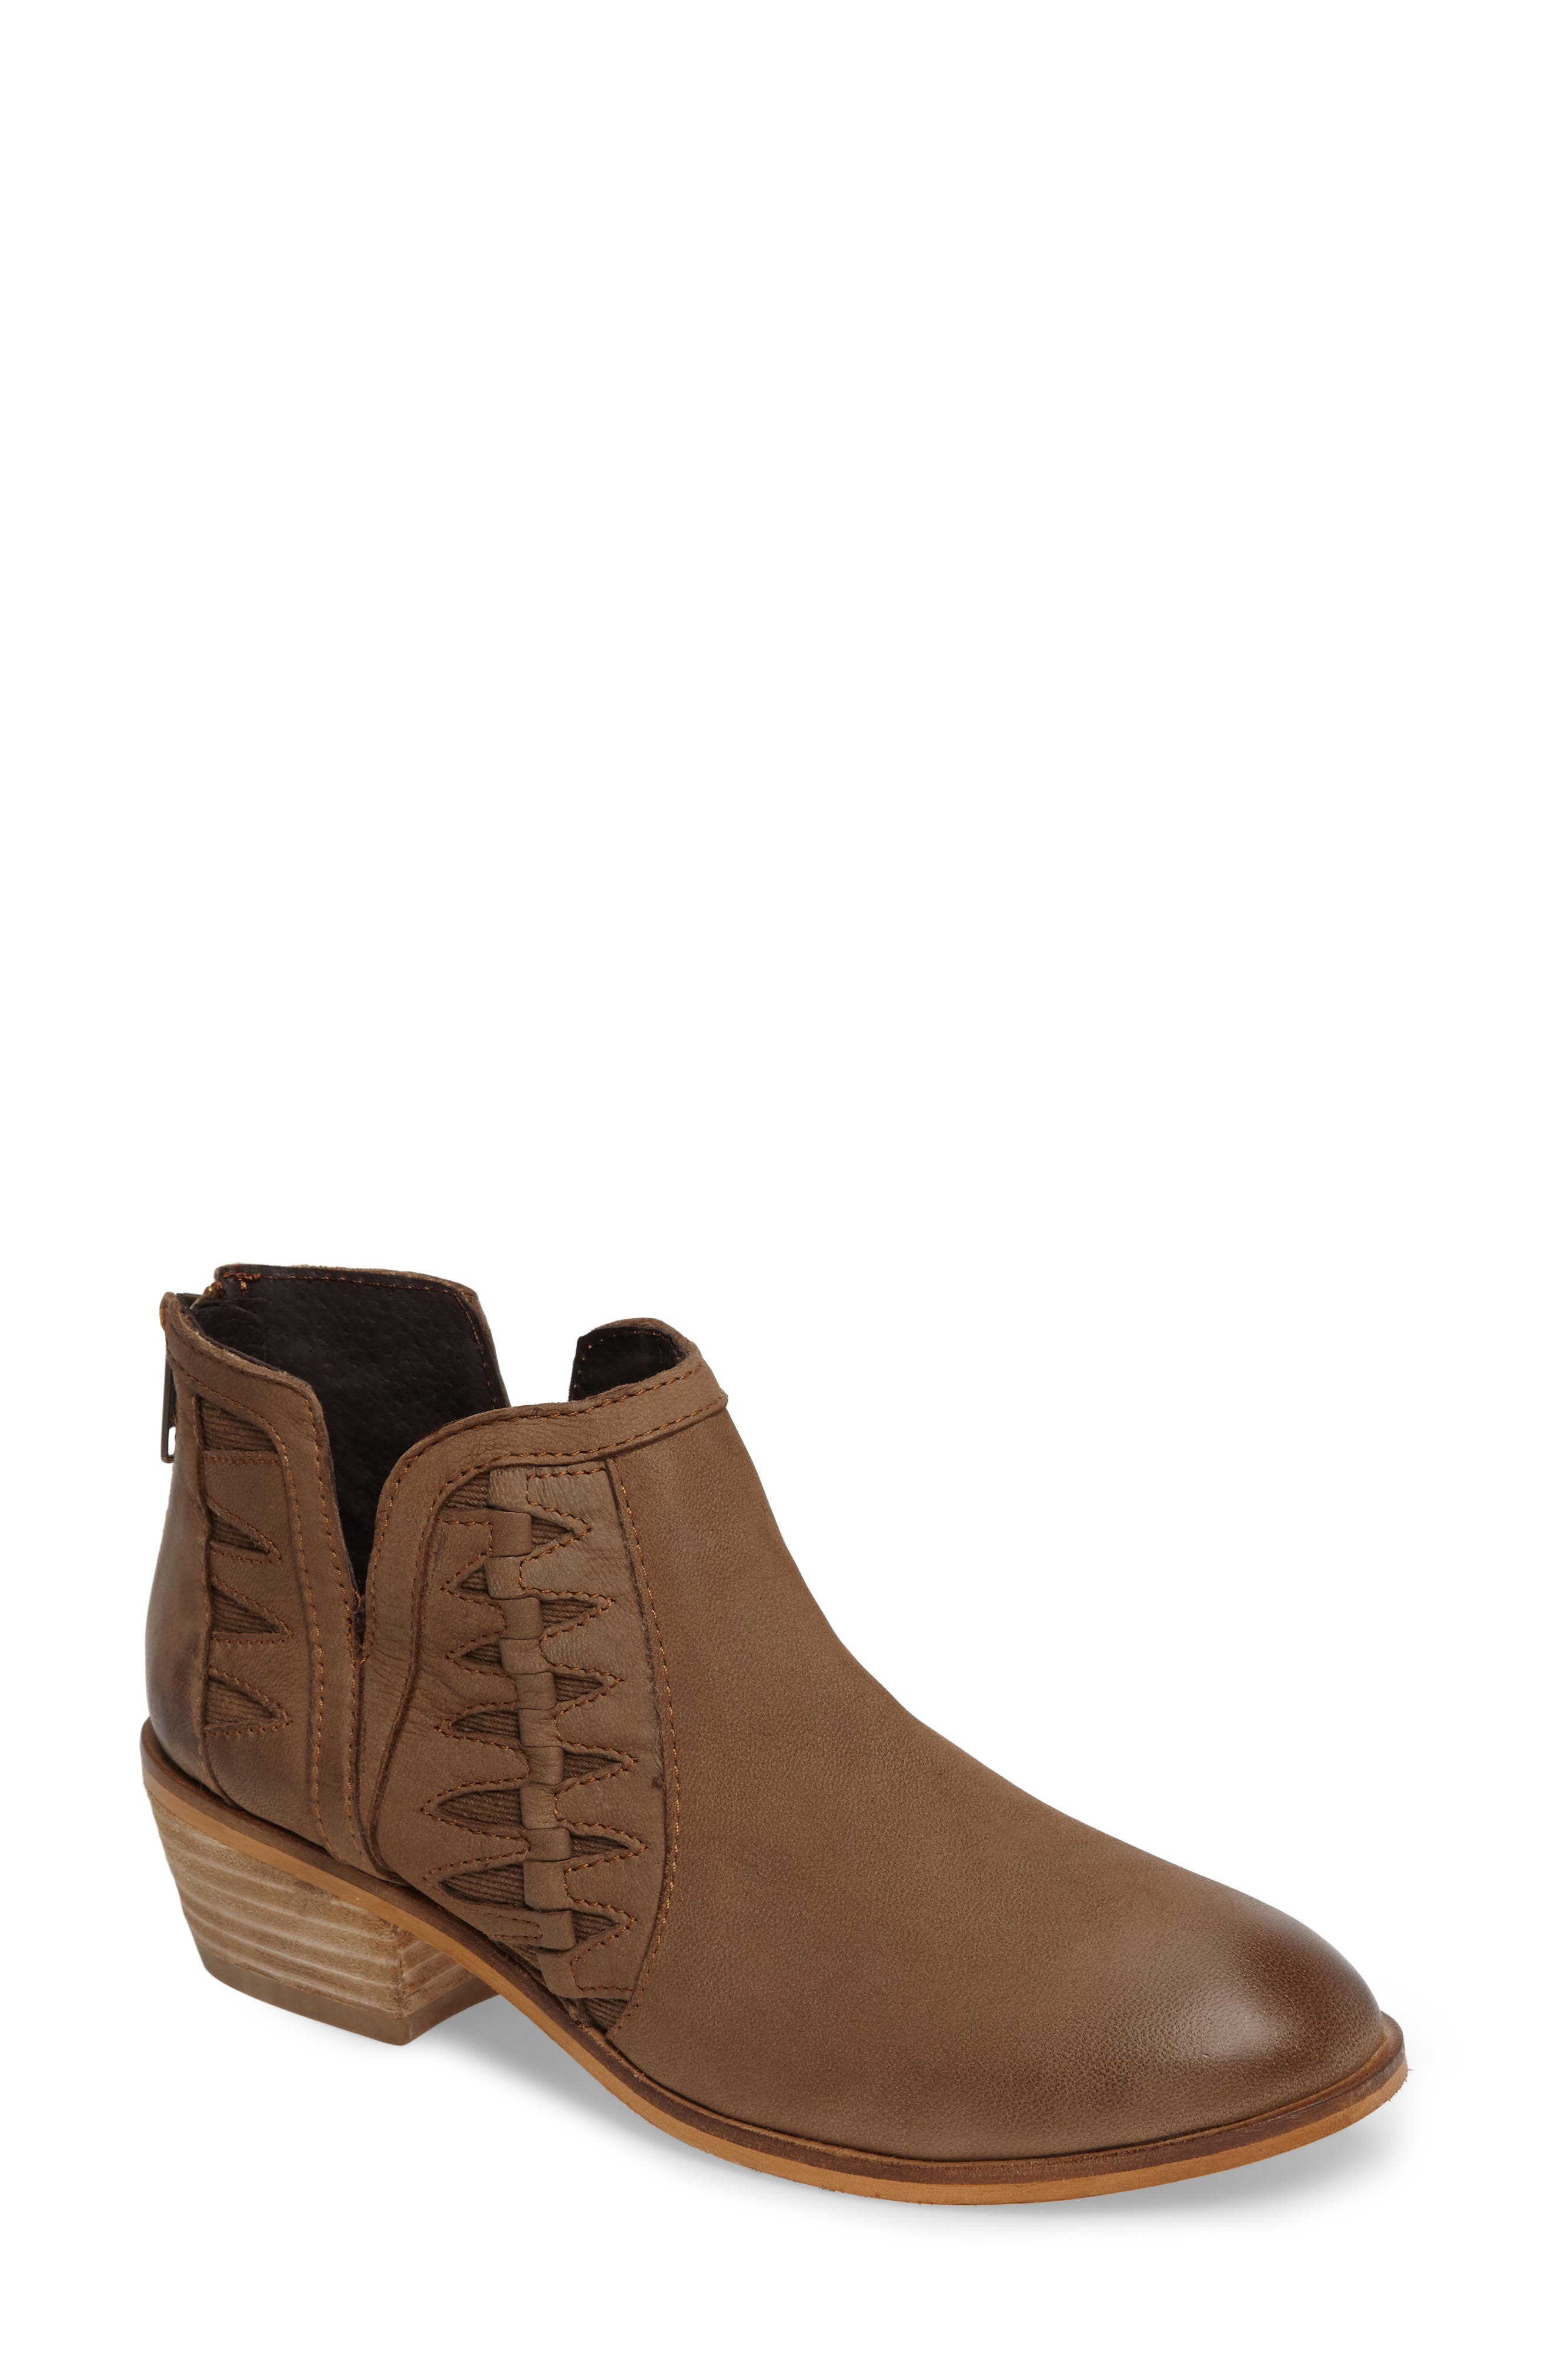 Yuma Bootie,                             Main thumbnail 1, color,                             Cognac Washed Nubuck Leather